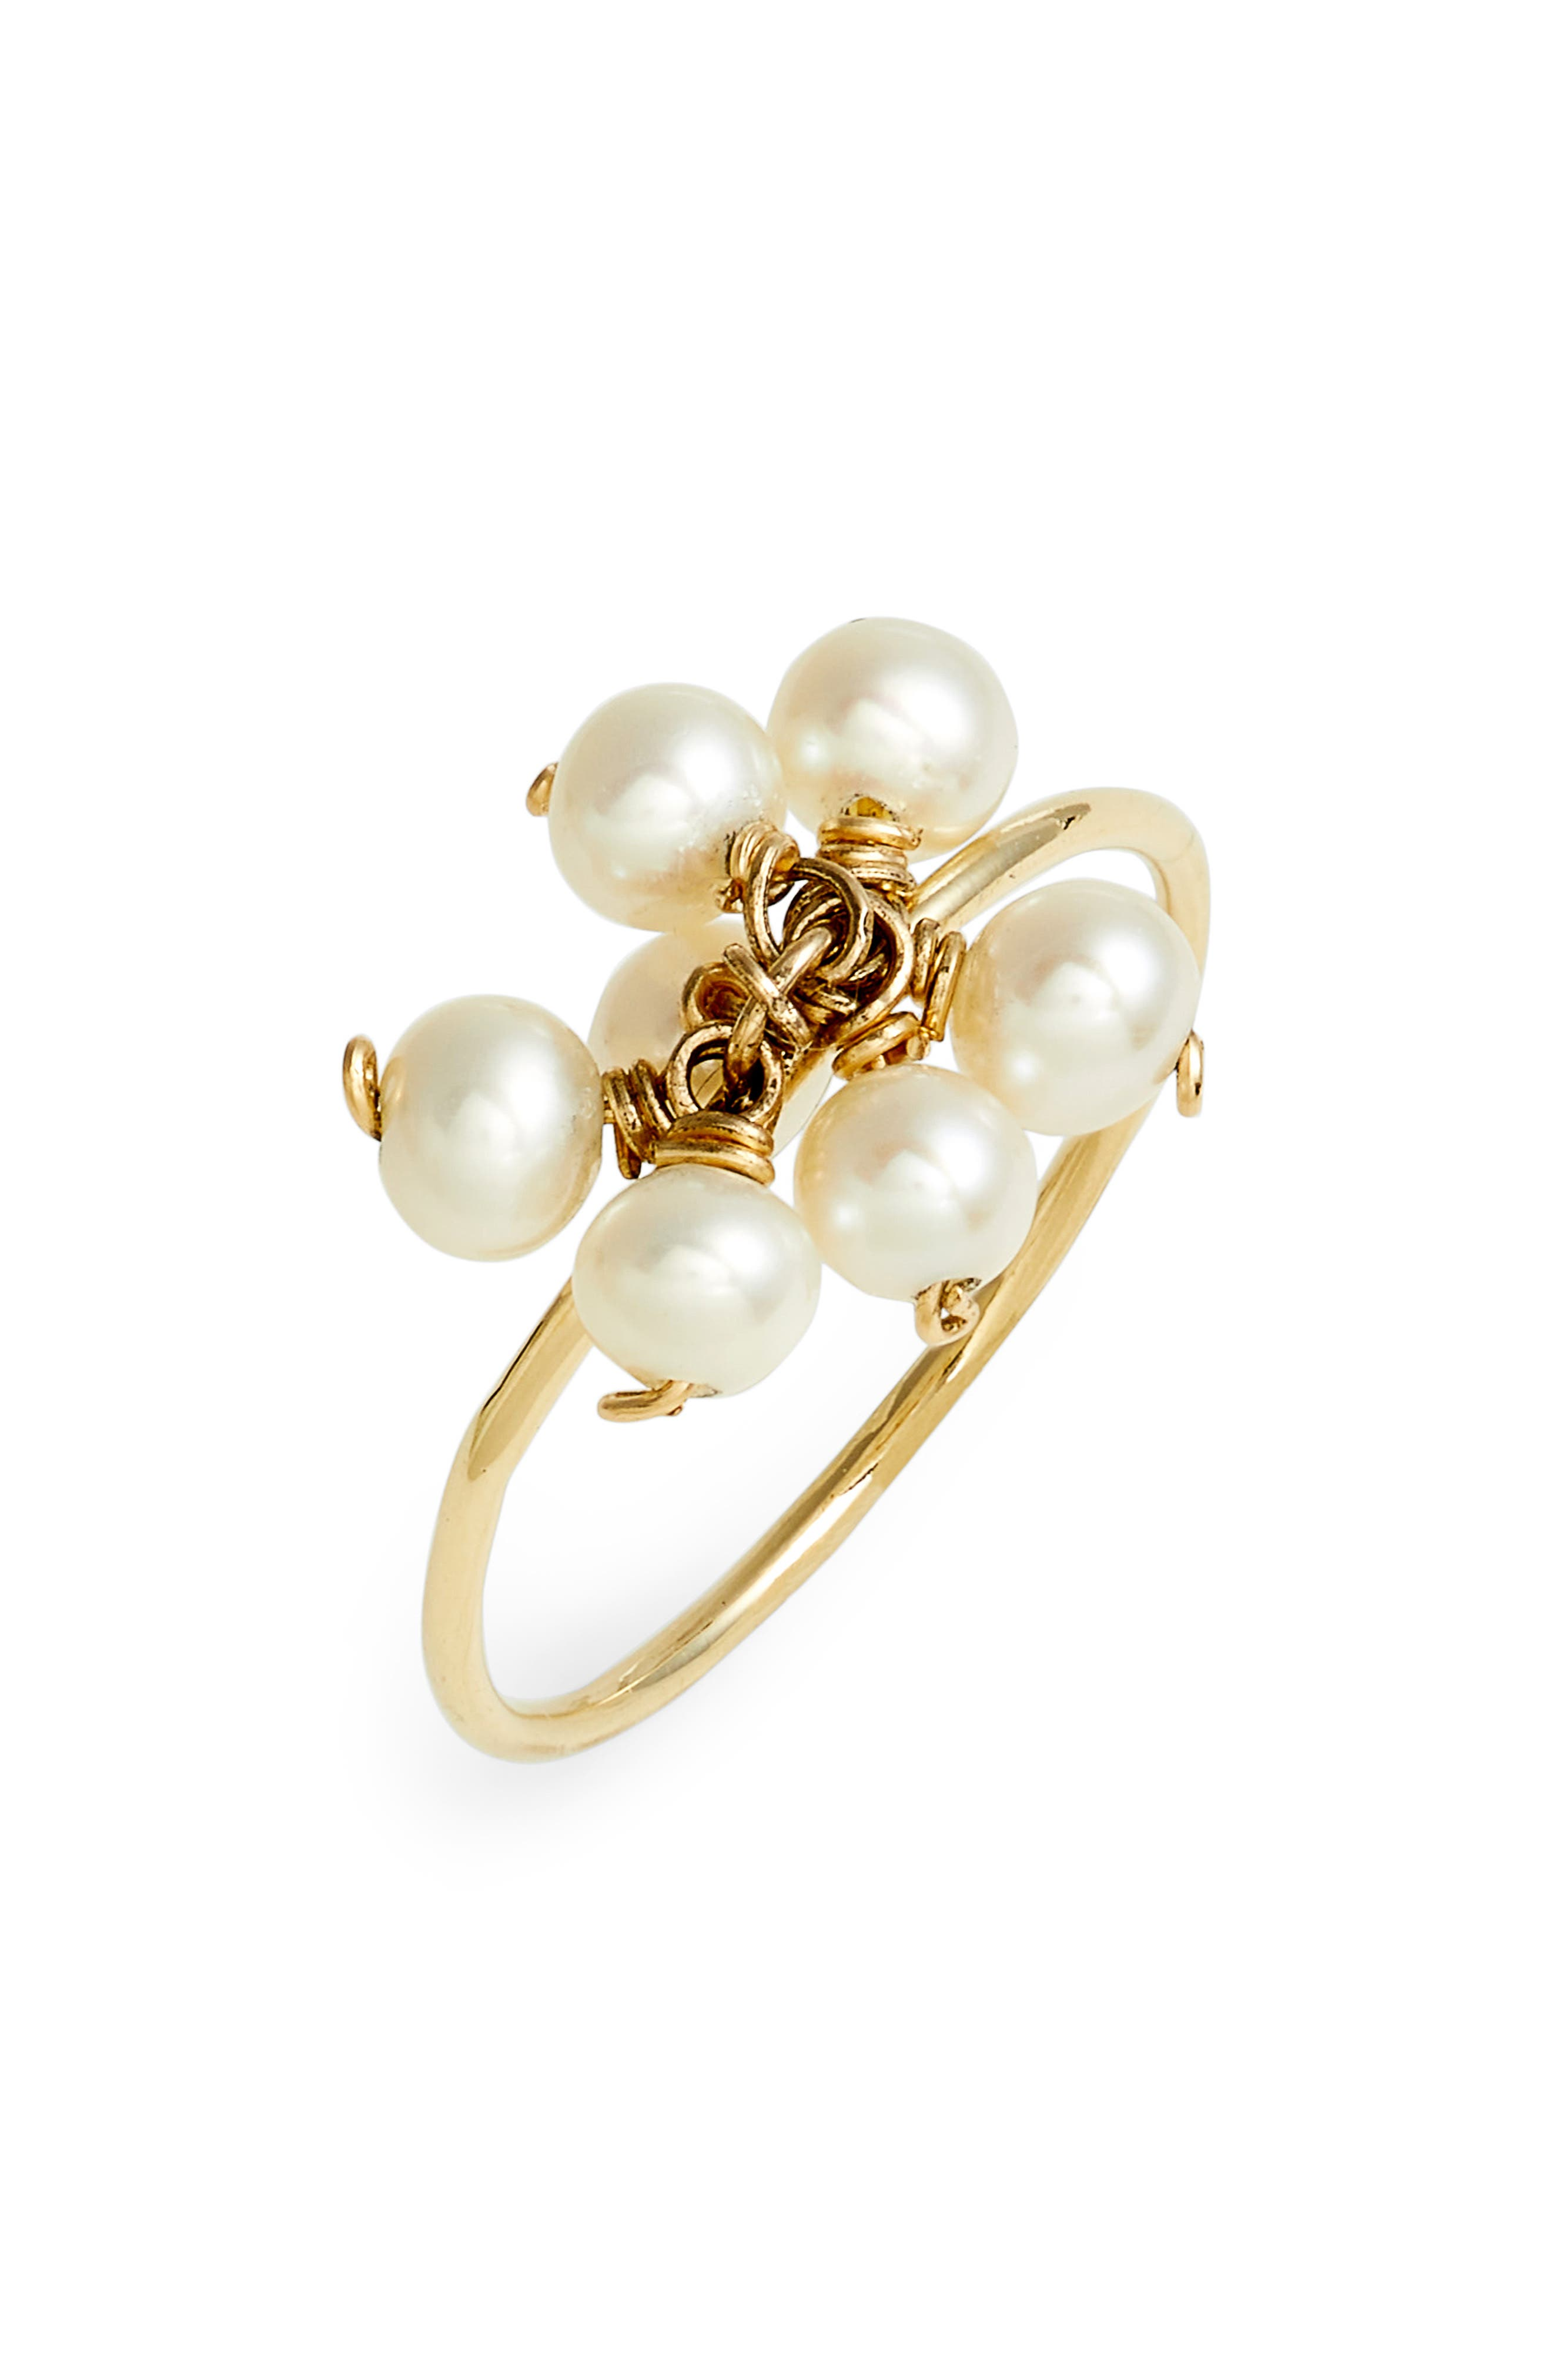 Baby Pearl Cluster Ring,                             Main thumbnail 1, color,                             Yellow Gold/ White Pearl